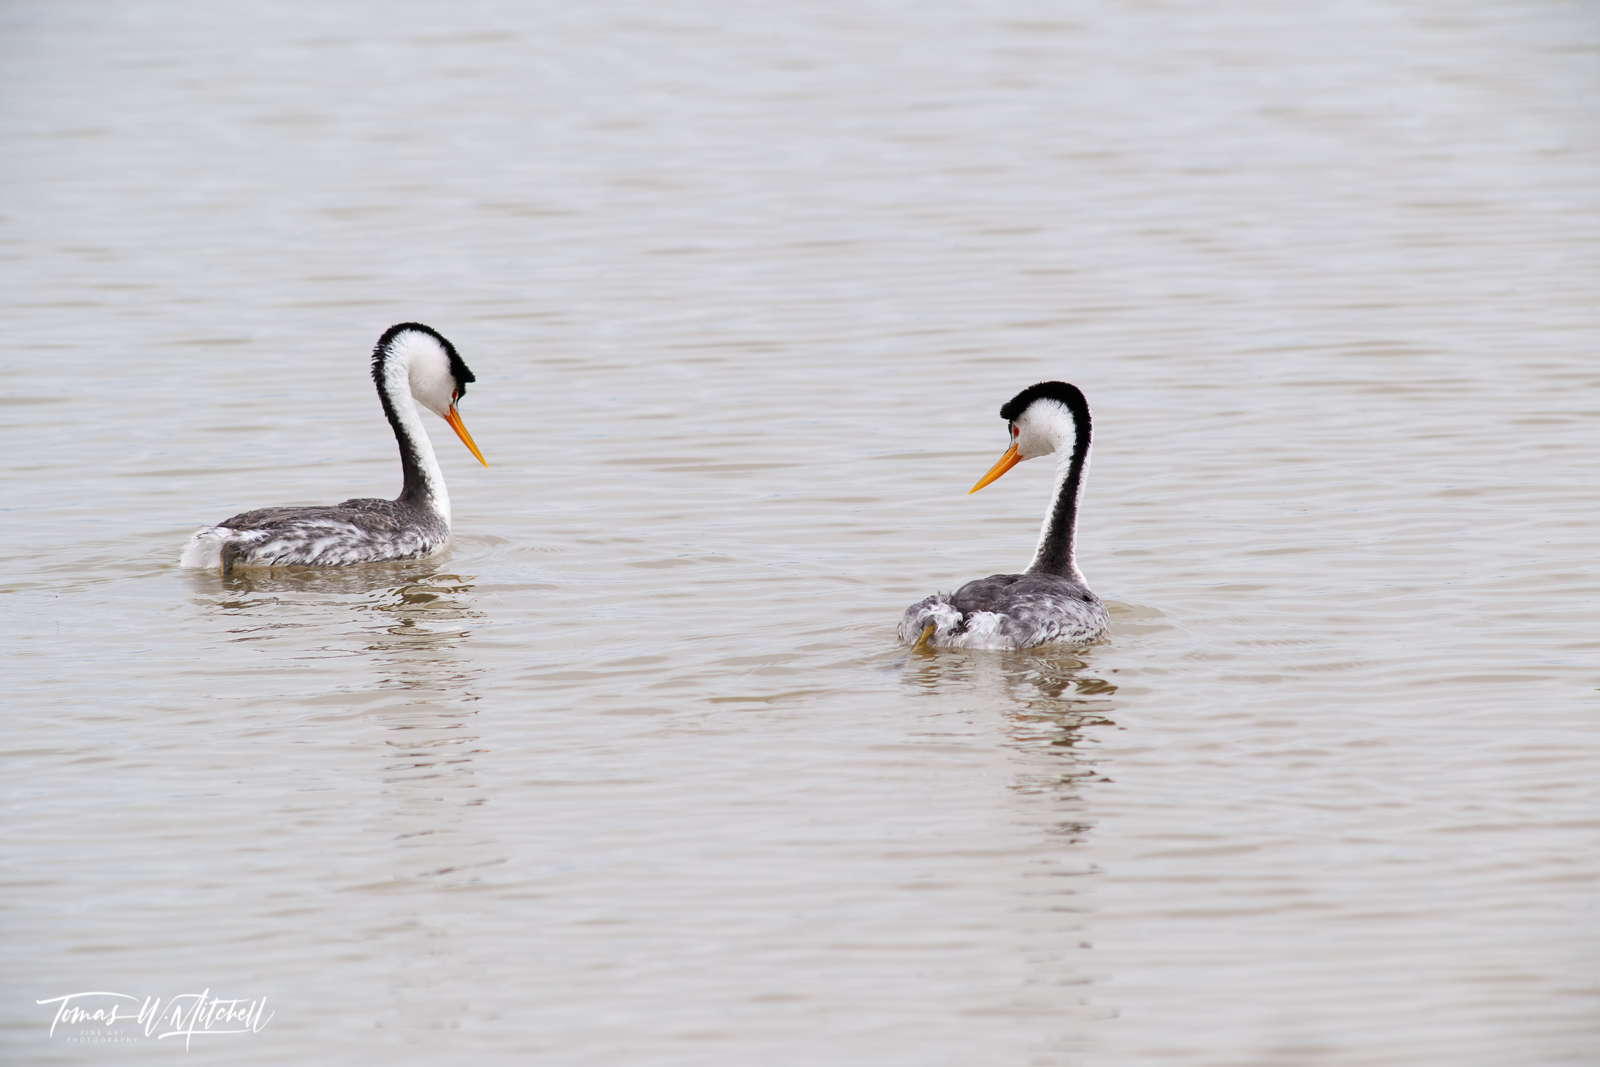 limited edition, fine art prints, photograph, clarks grebes, bear river bird refuge, utah, birds, water, photo